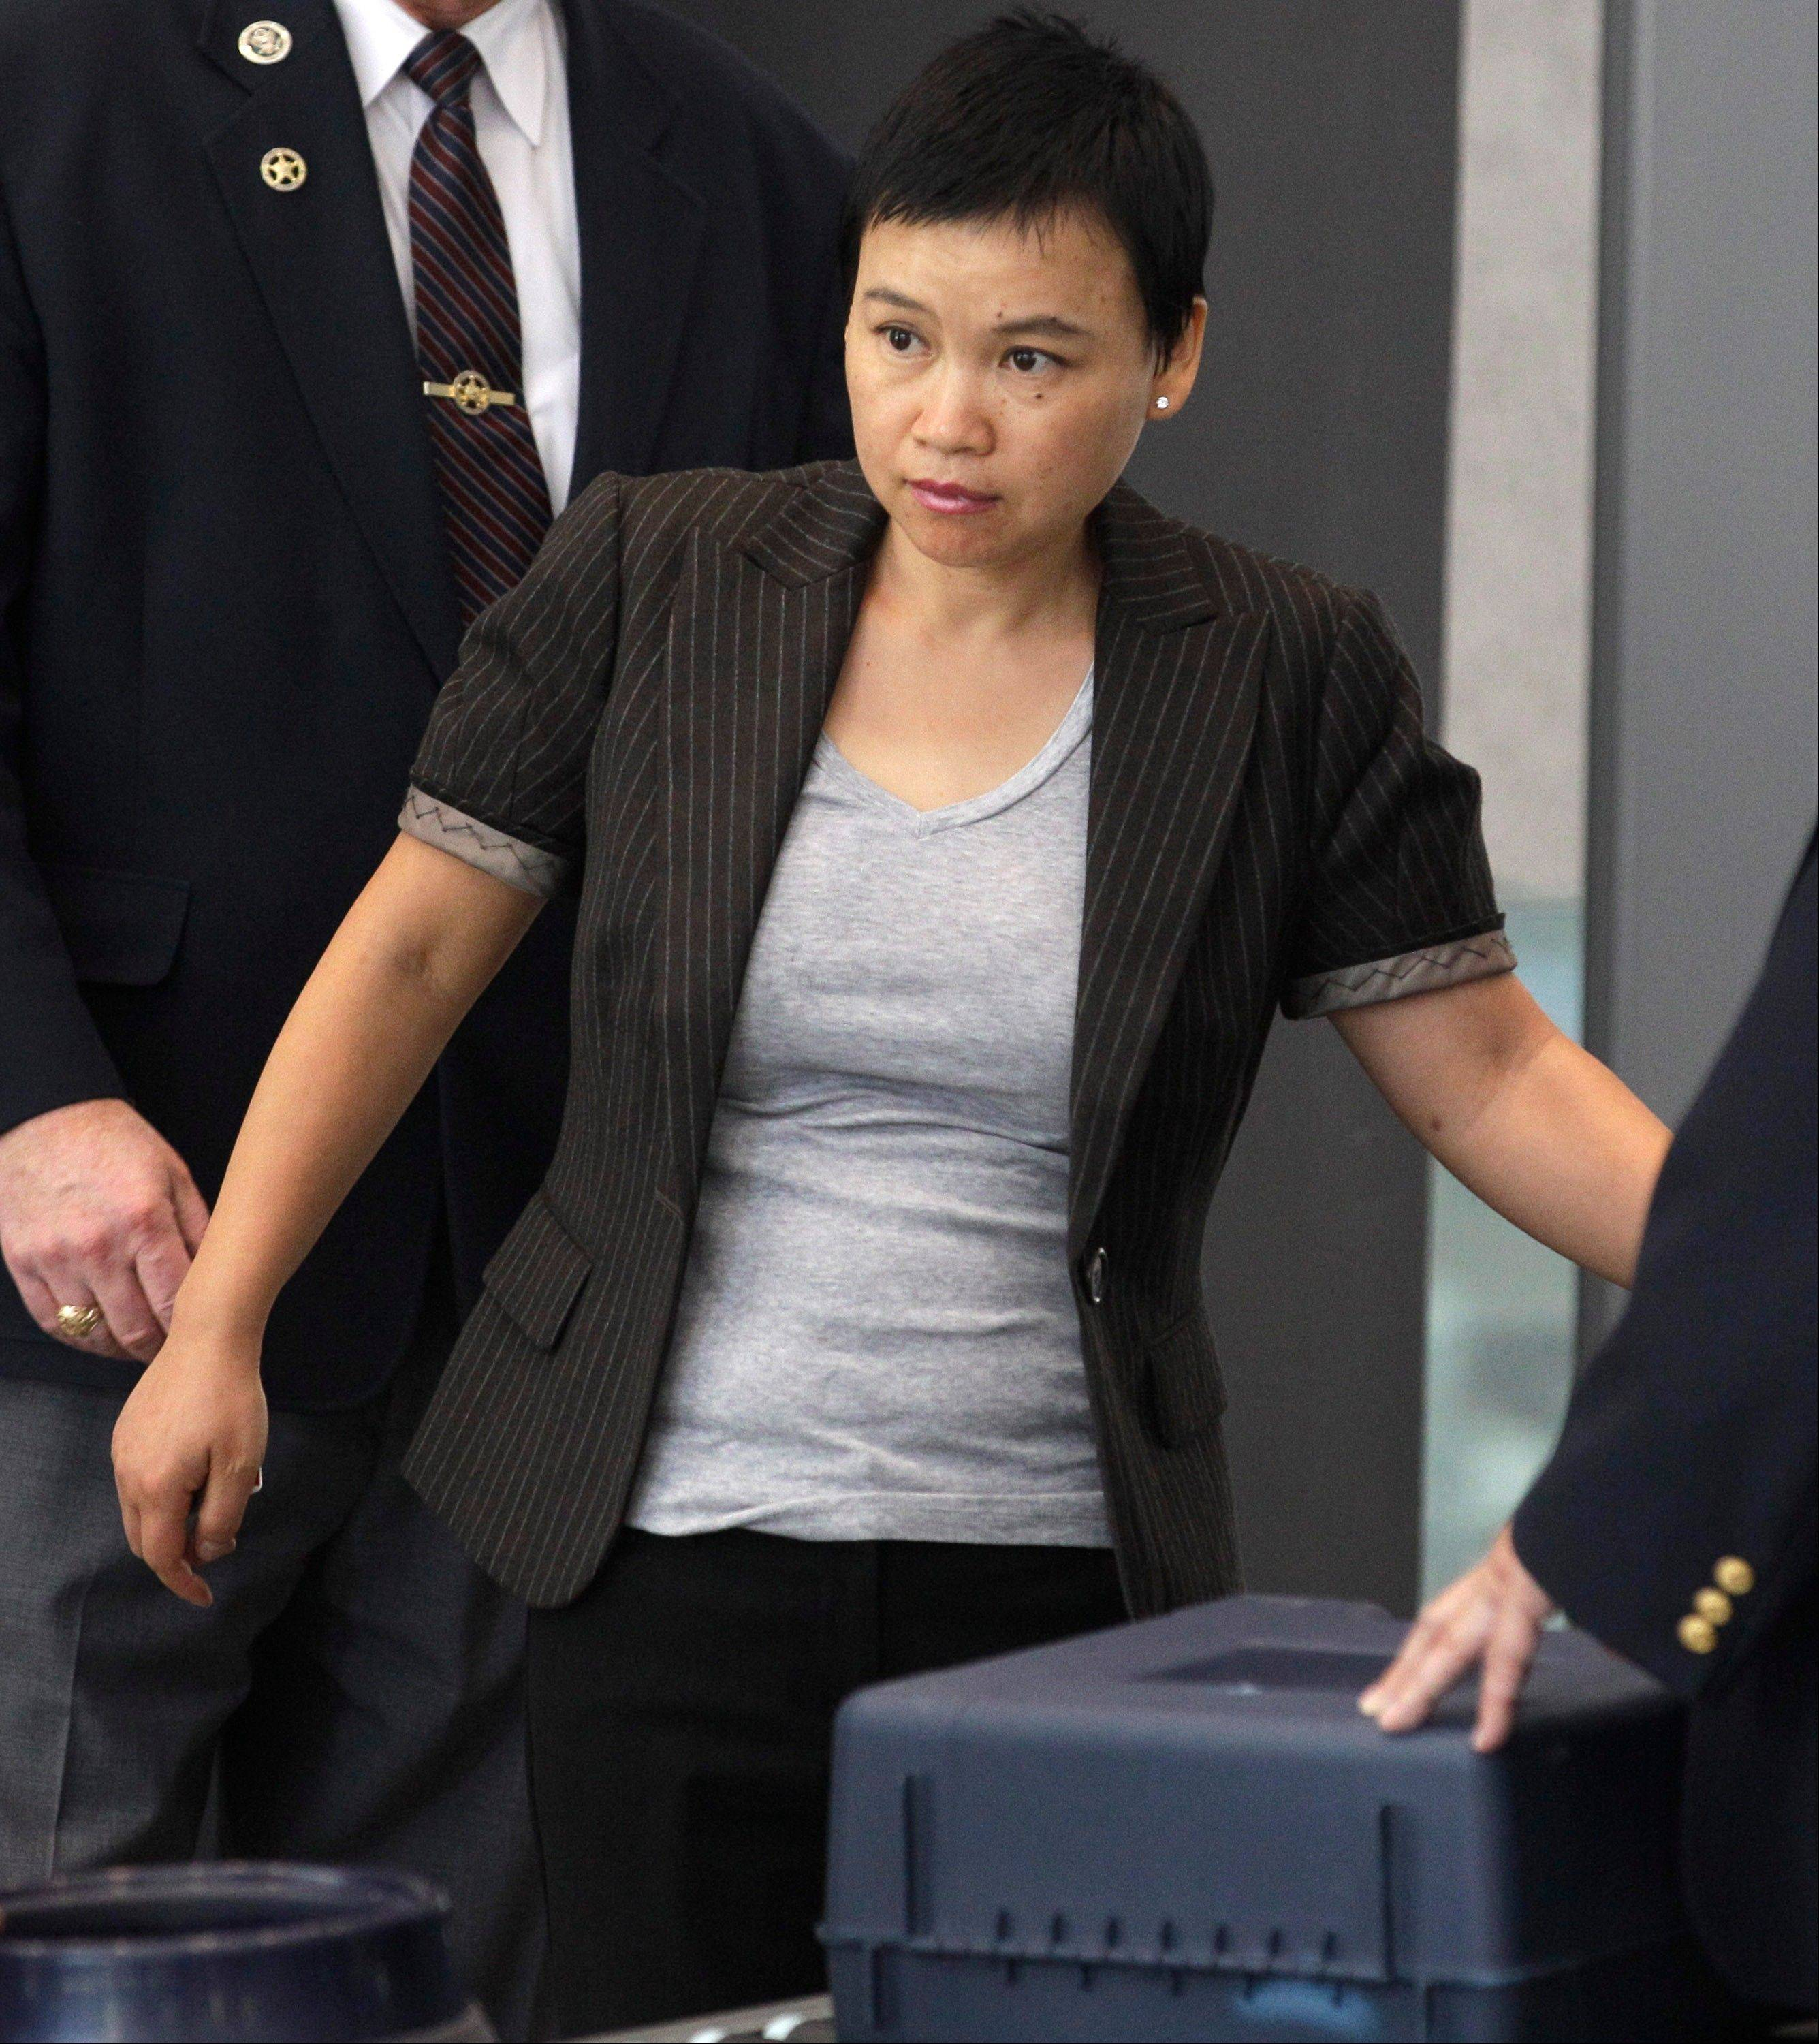 Hanjuan Jin enters the federal courthouse Wednesday in Chicago before being sentenced to four years in prison for stealing trade secrets from Motorola.